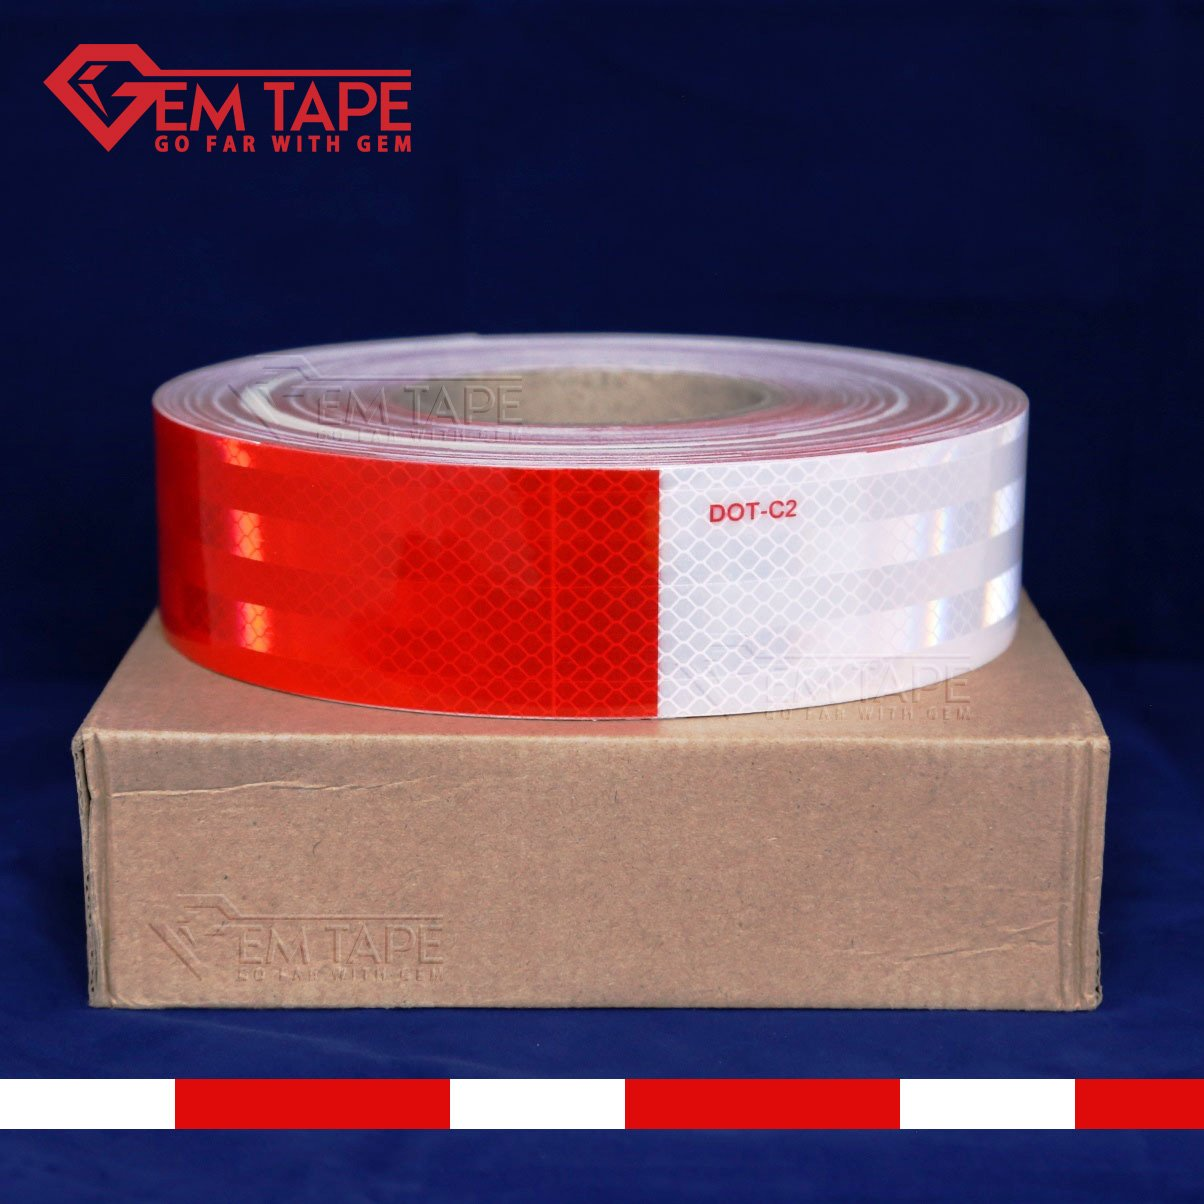 Gem Tape Premium Reflective Tape DOT Conspicuity Tape Comparable to 3M Diamond Grade (2 In. x 30 Ft.)